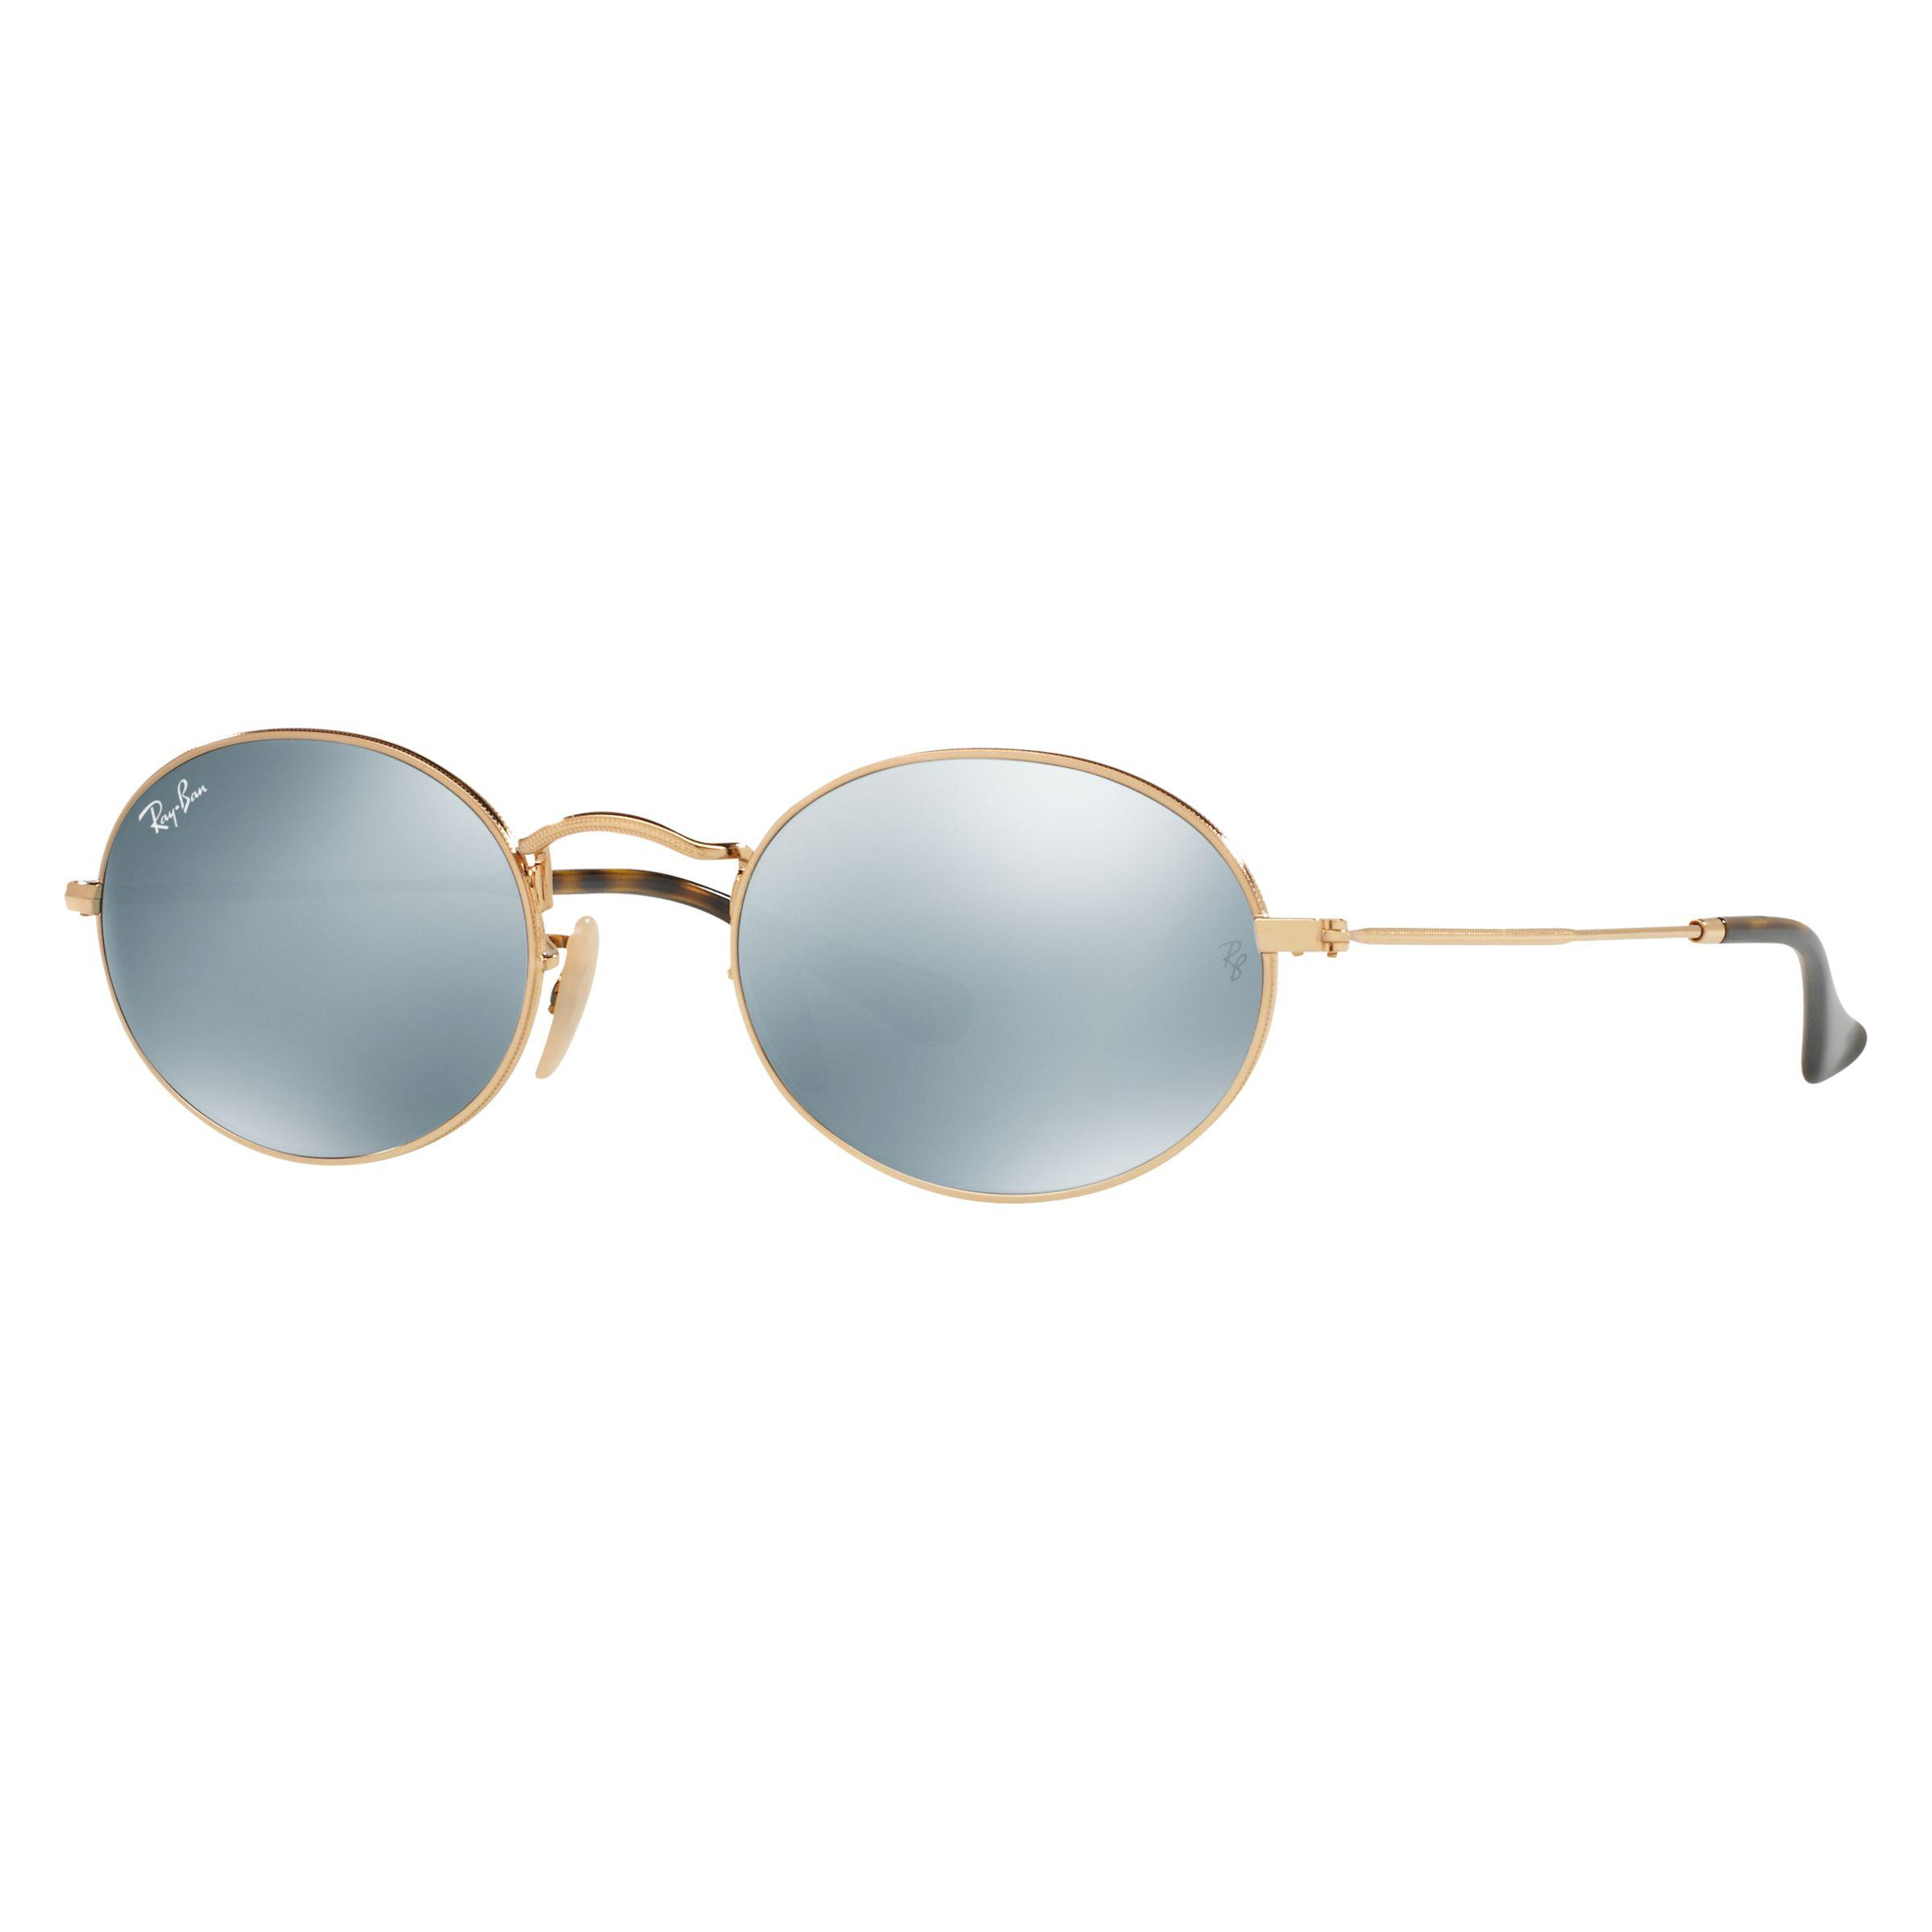 f943a66338 Ray-Ban Rb3547 Oval Flat Lens Sunglasses in White - Lyst